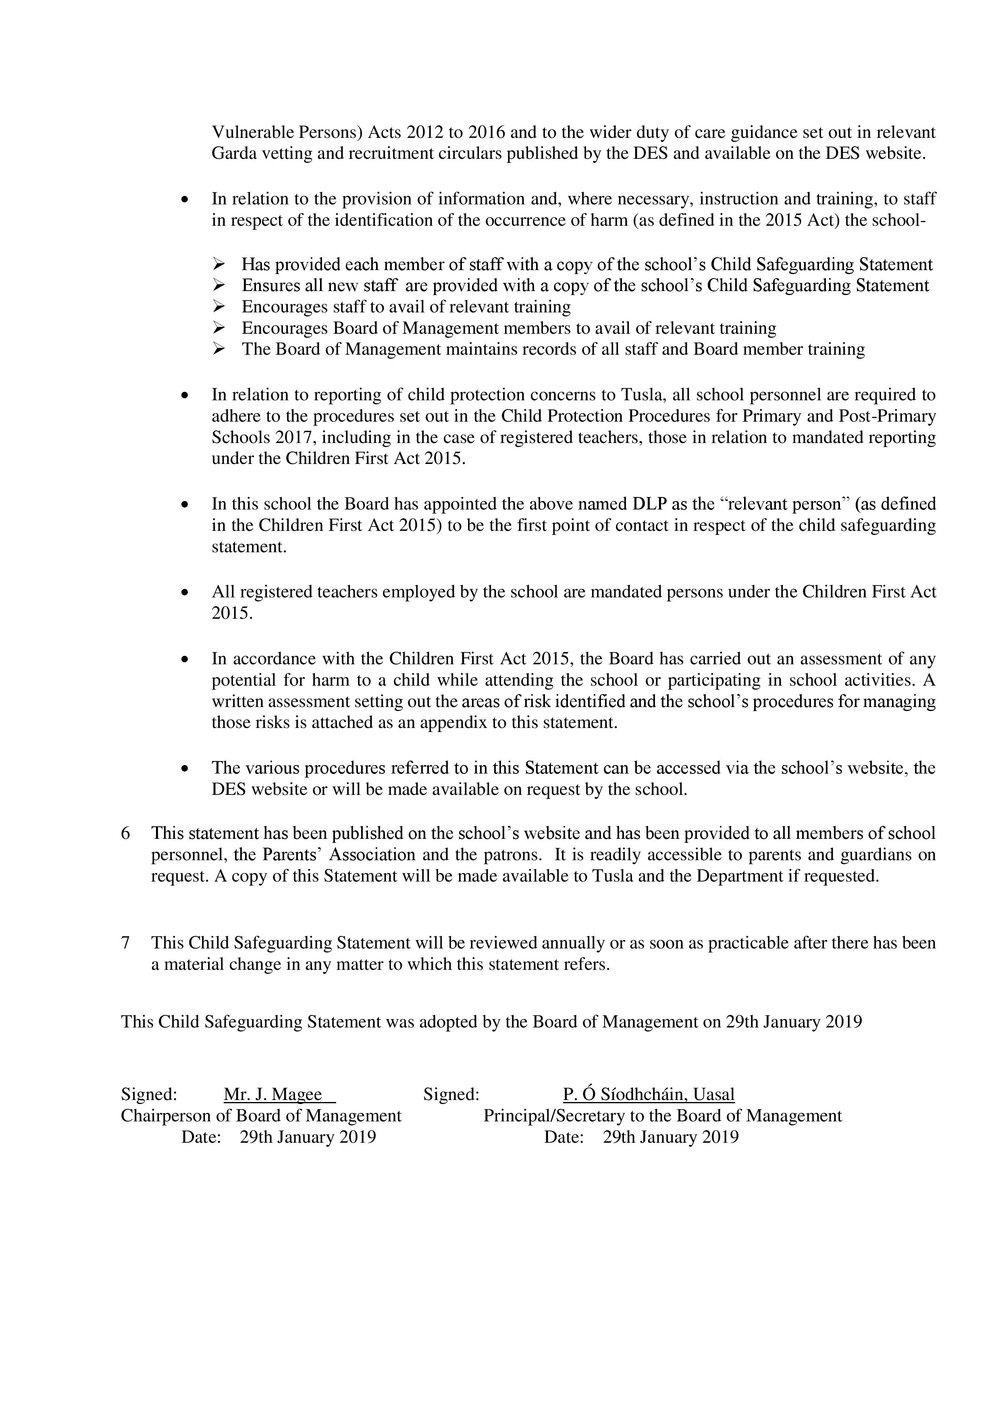 Child Safeguarding Statement-page-002.jpg